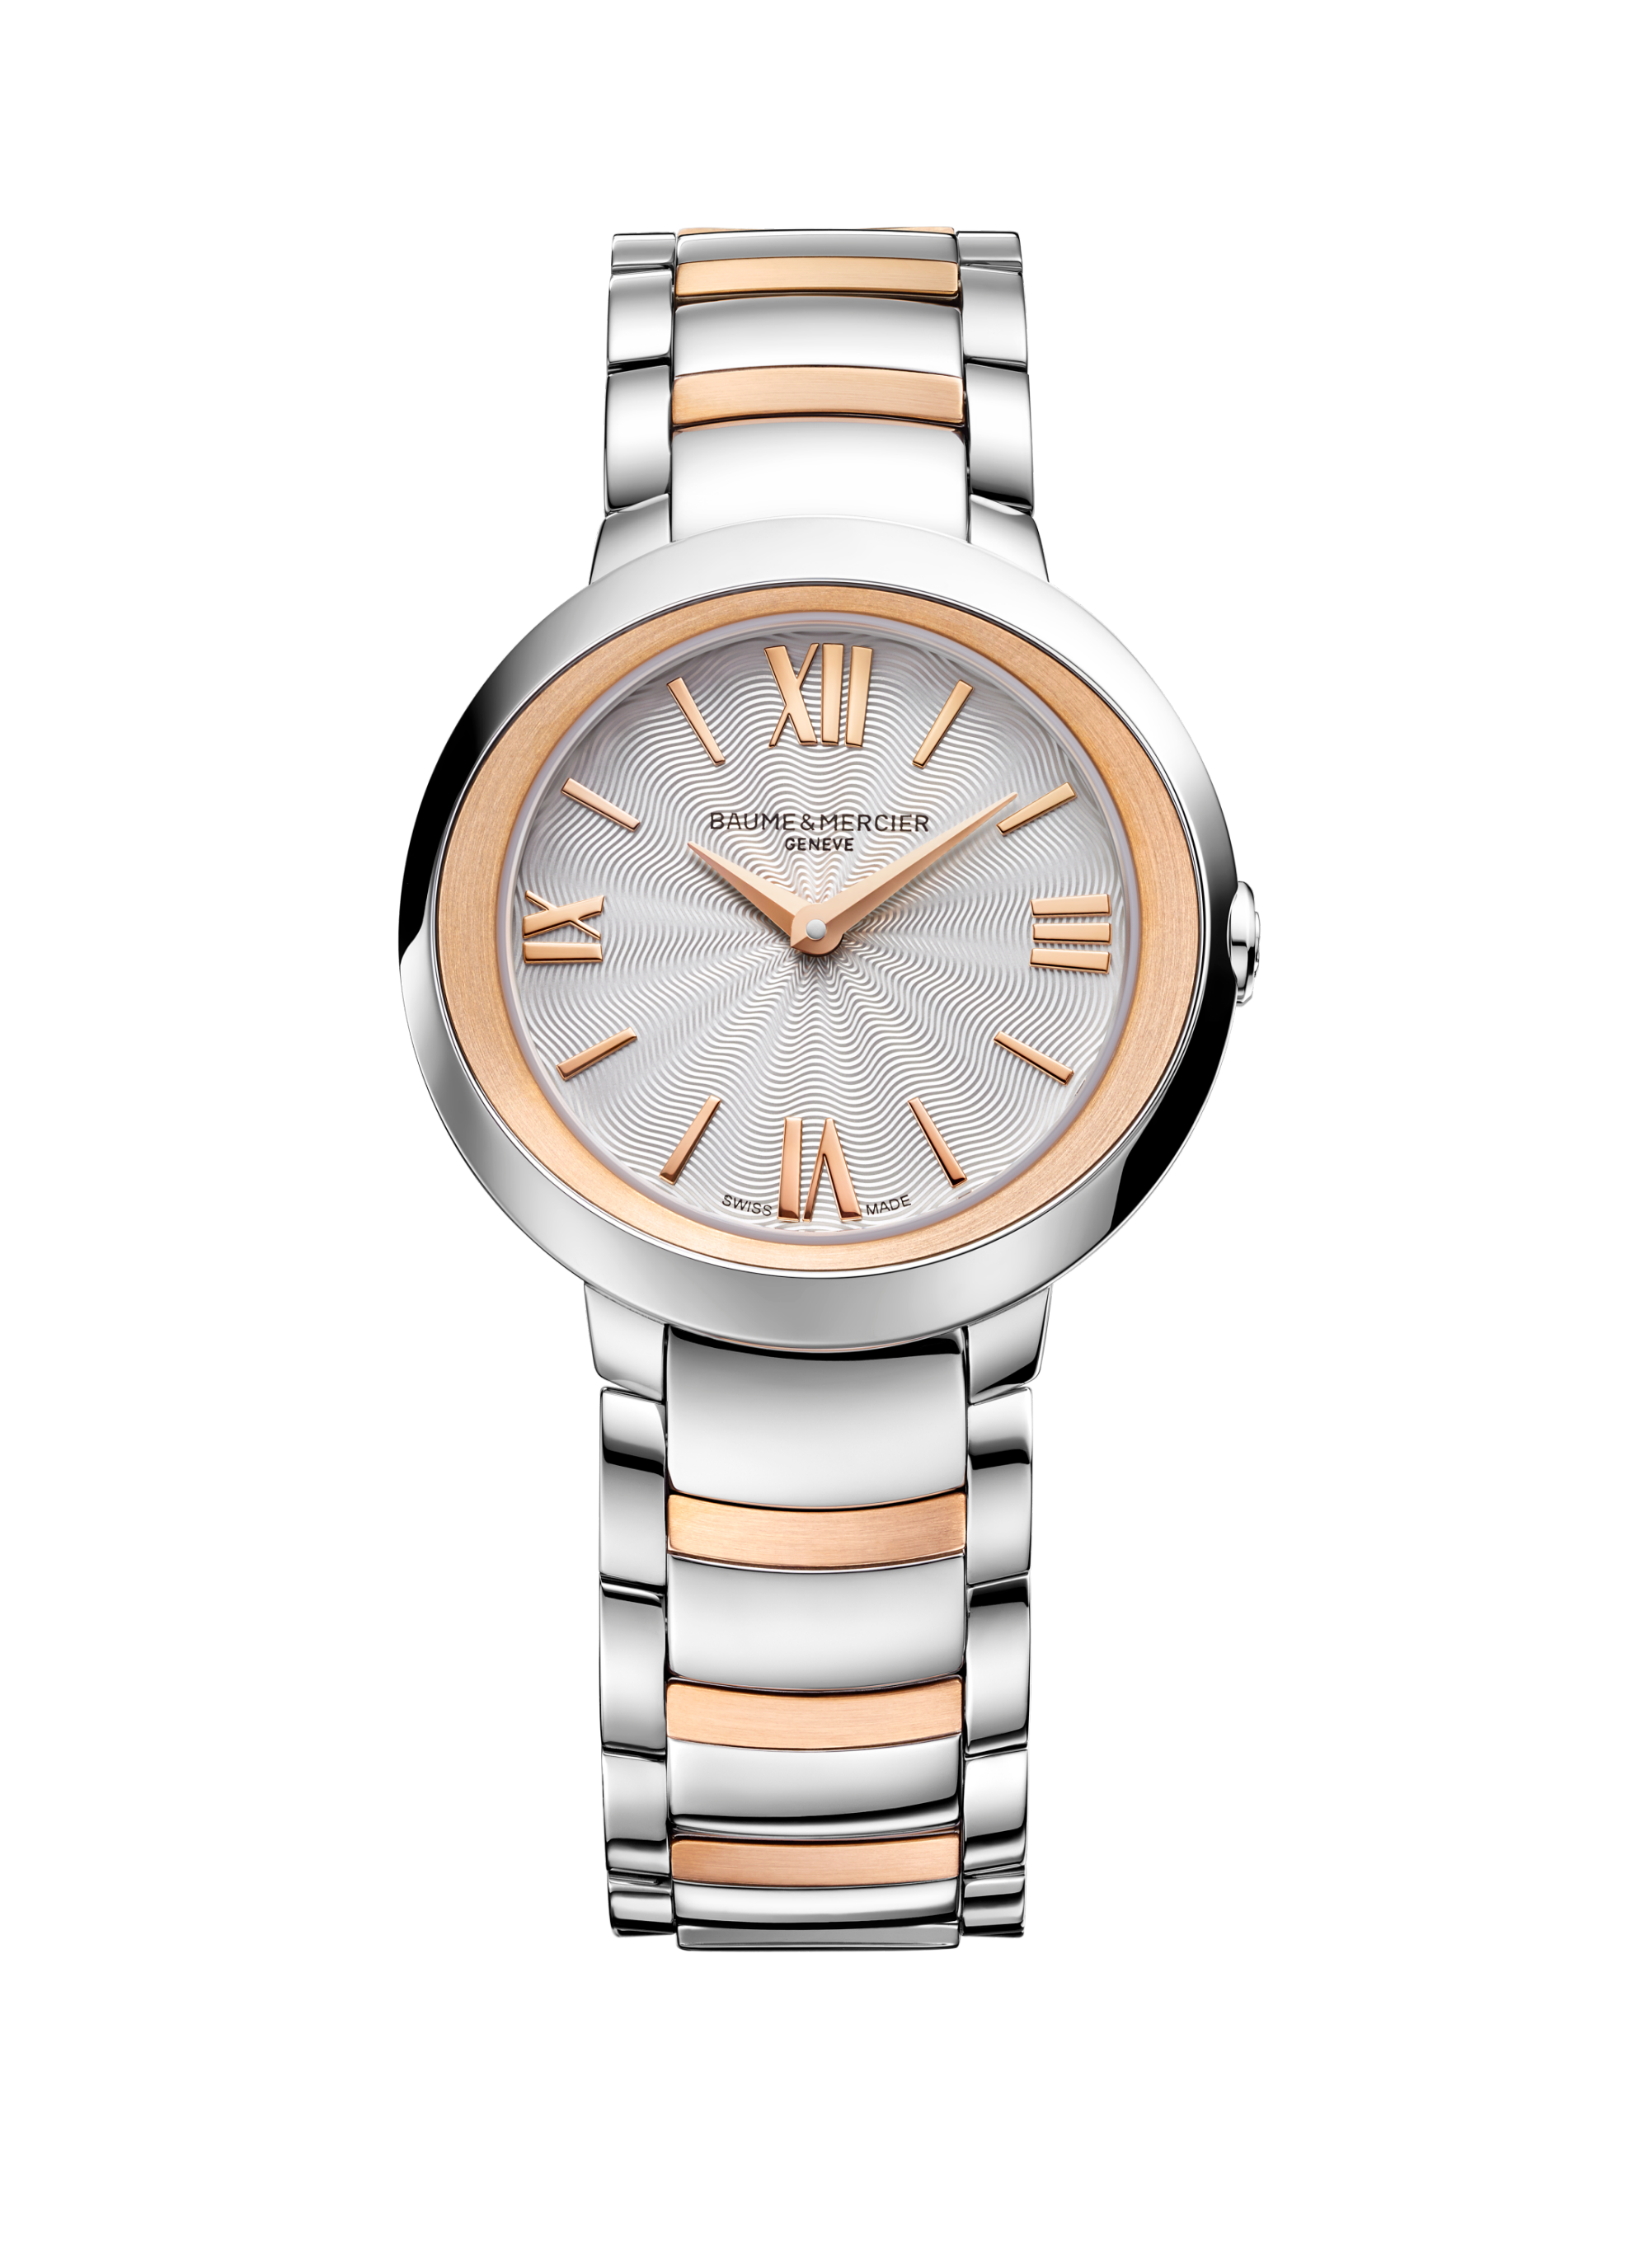 Promesse 10159 Watch for ladies | Check Prices on Baume & Mercier Front -